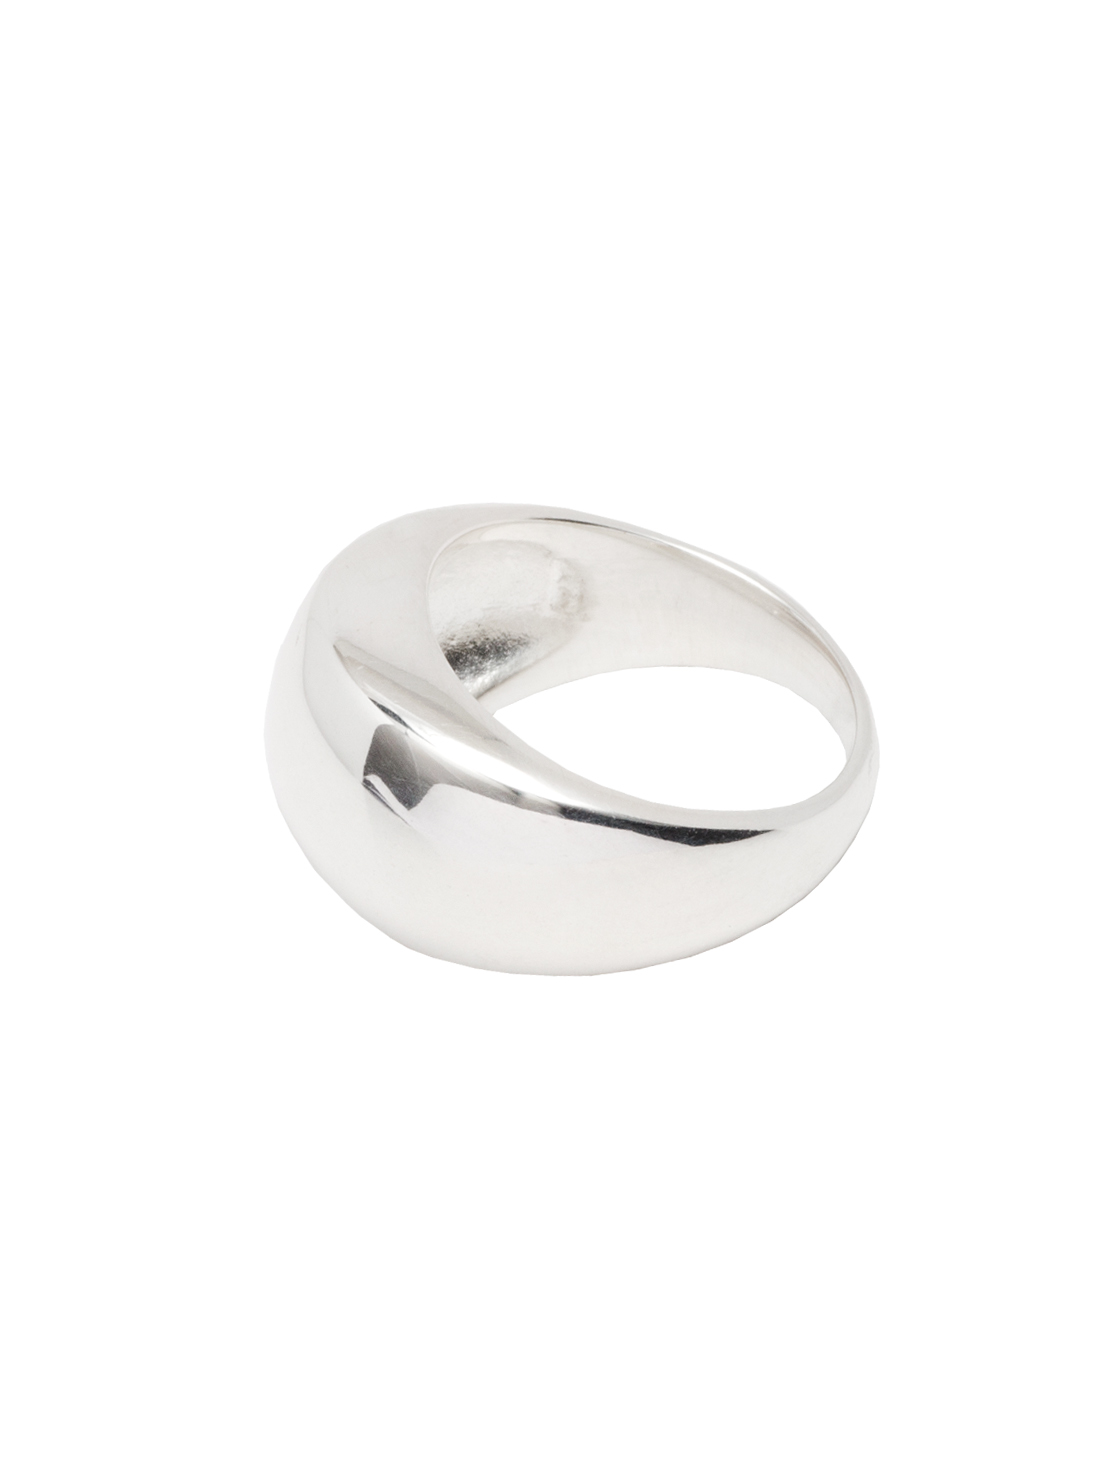 aebfb6f54ffe8 The Silver Dome Ring